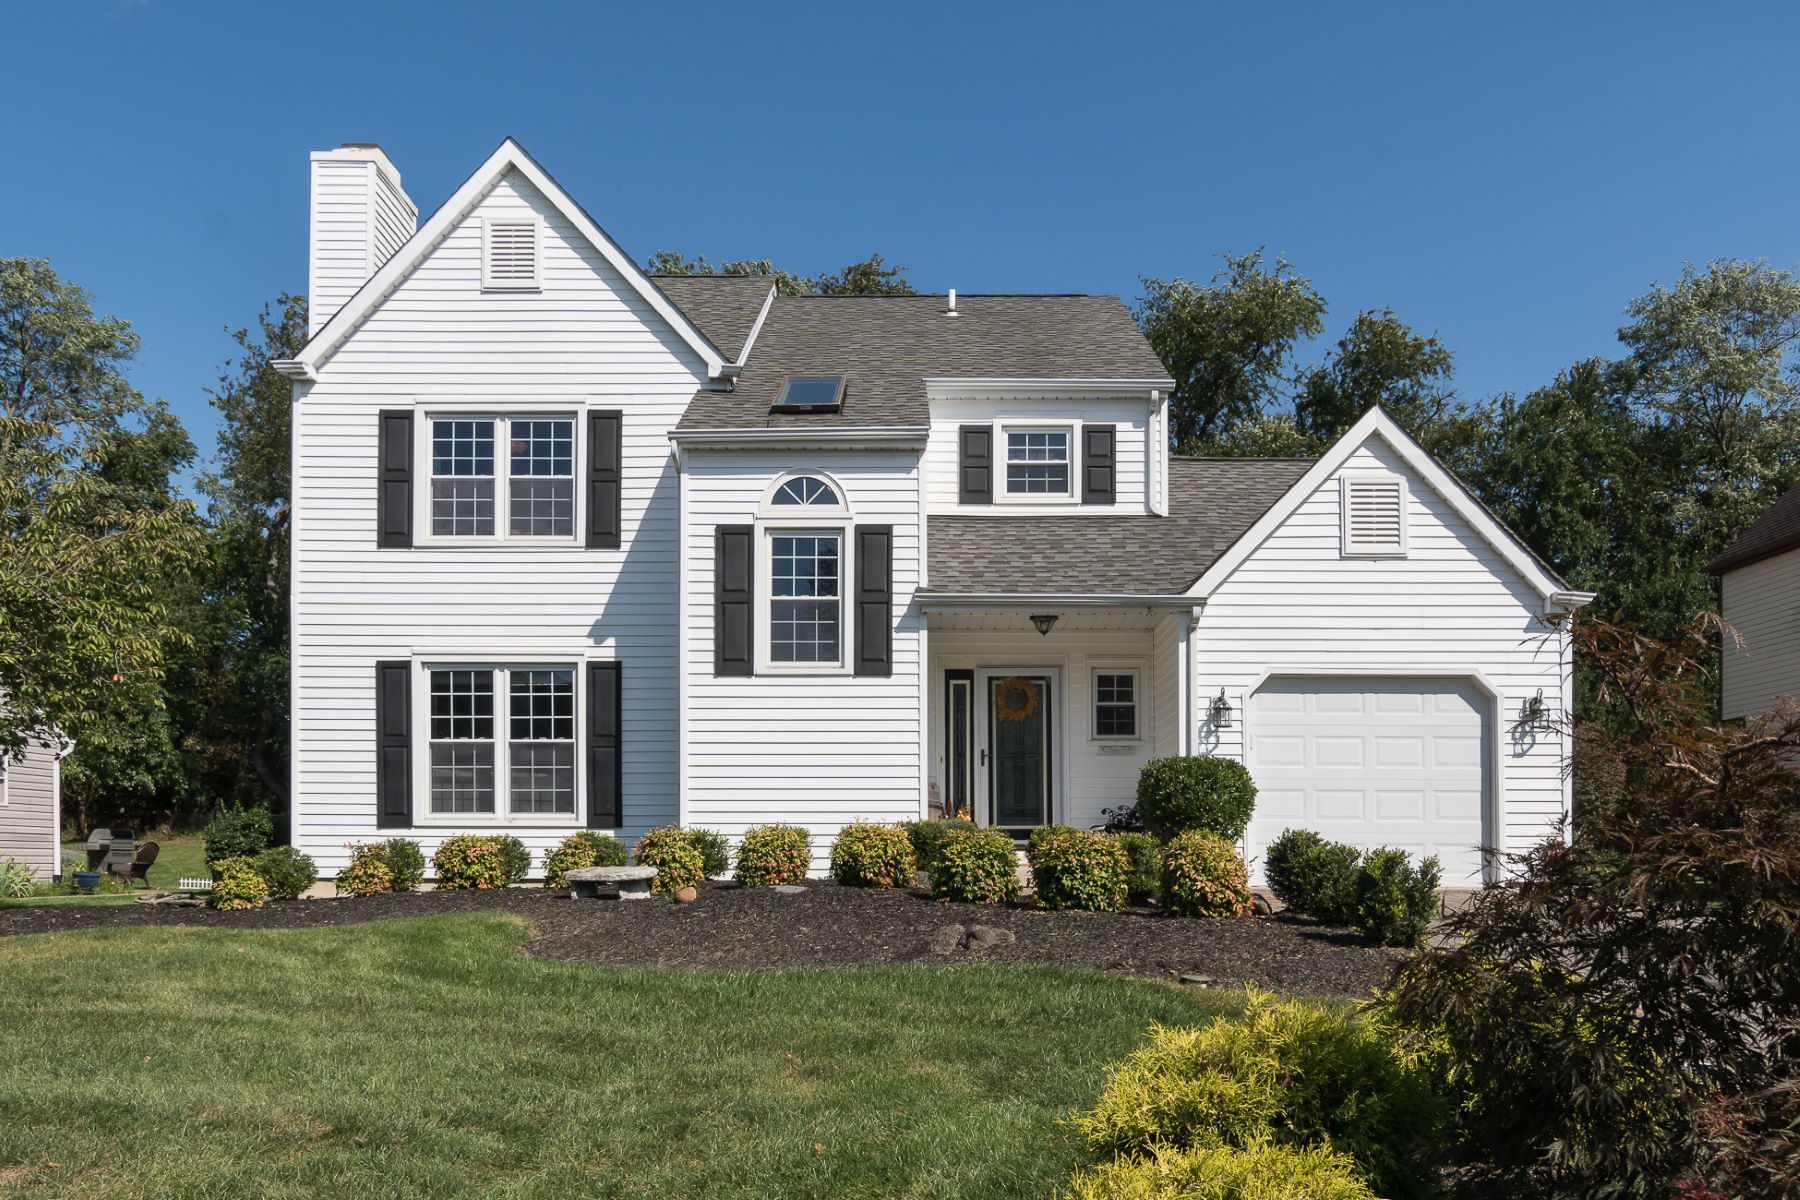 Single Family Homes for Sale at Pretty as a Picture in Hamilton's Ravenscroft 9 Country Lane, Hamilton, New Jersey 08690 United States